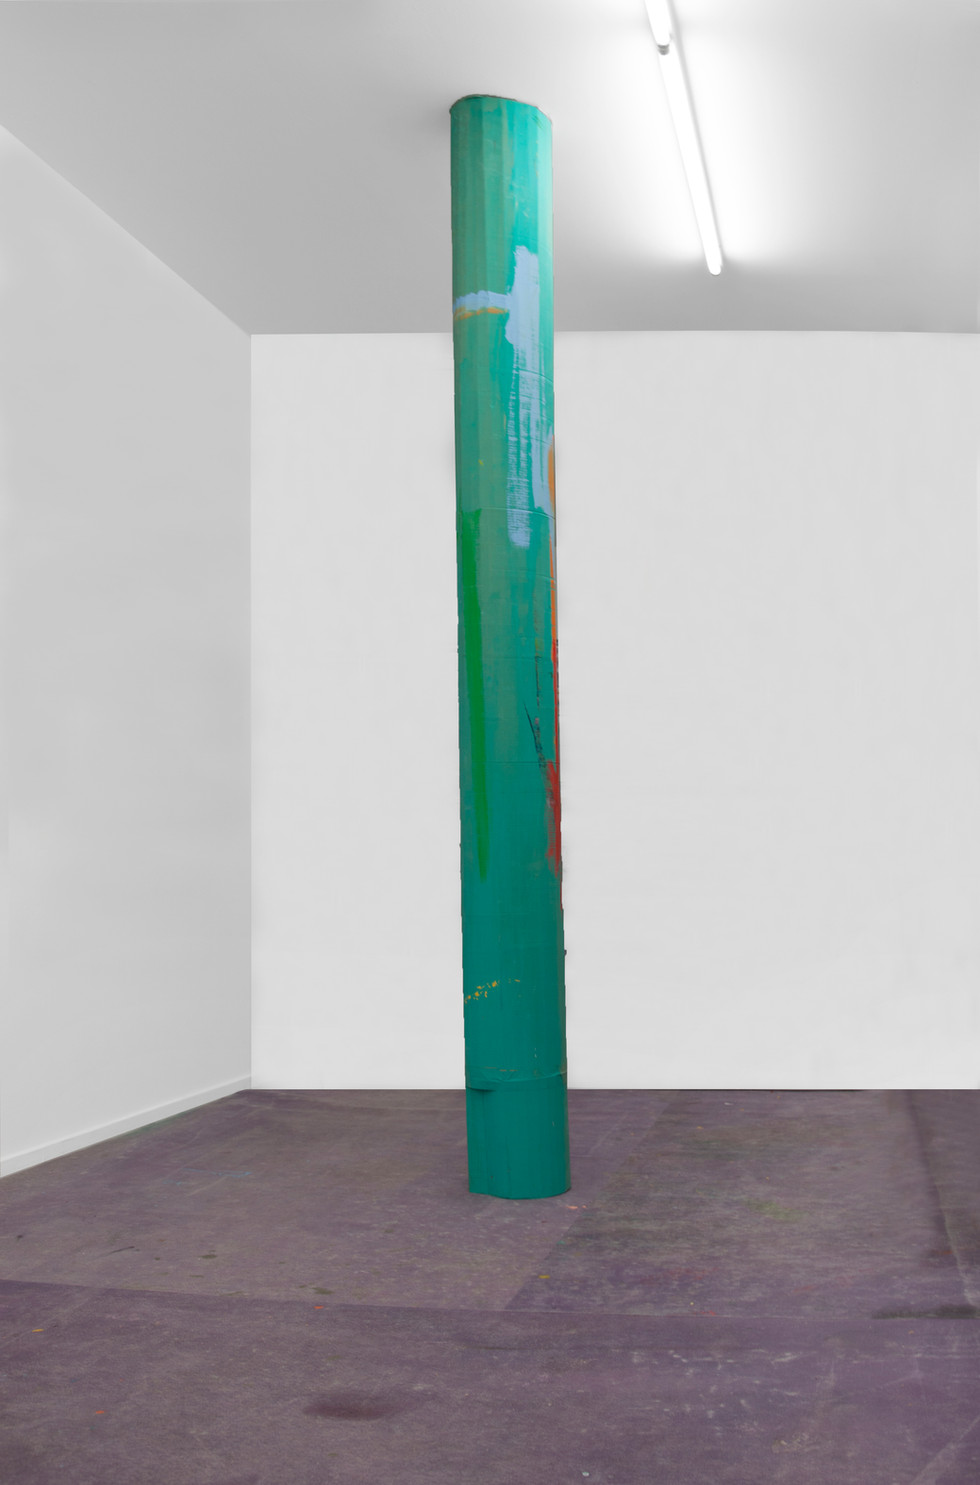 RINUS VAN DE VELDE,  Prop, Studio Robert Rino, Colored Column, 2017